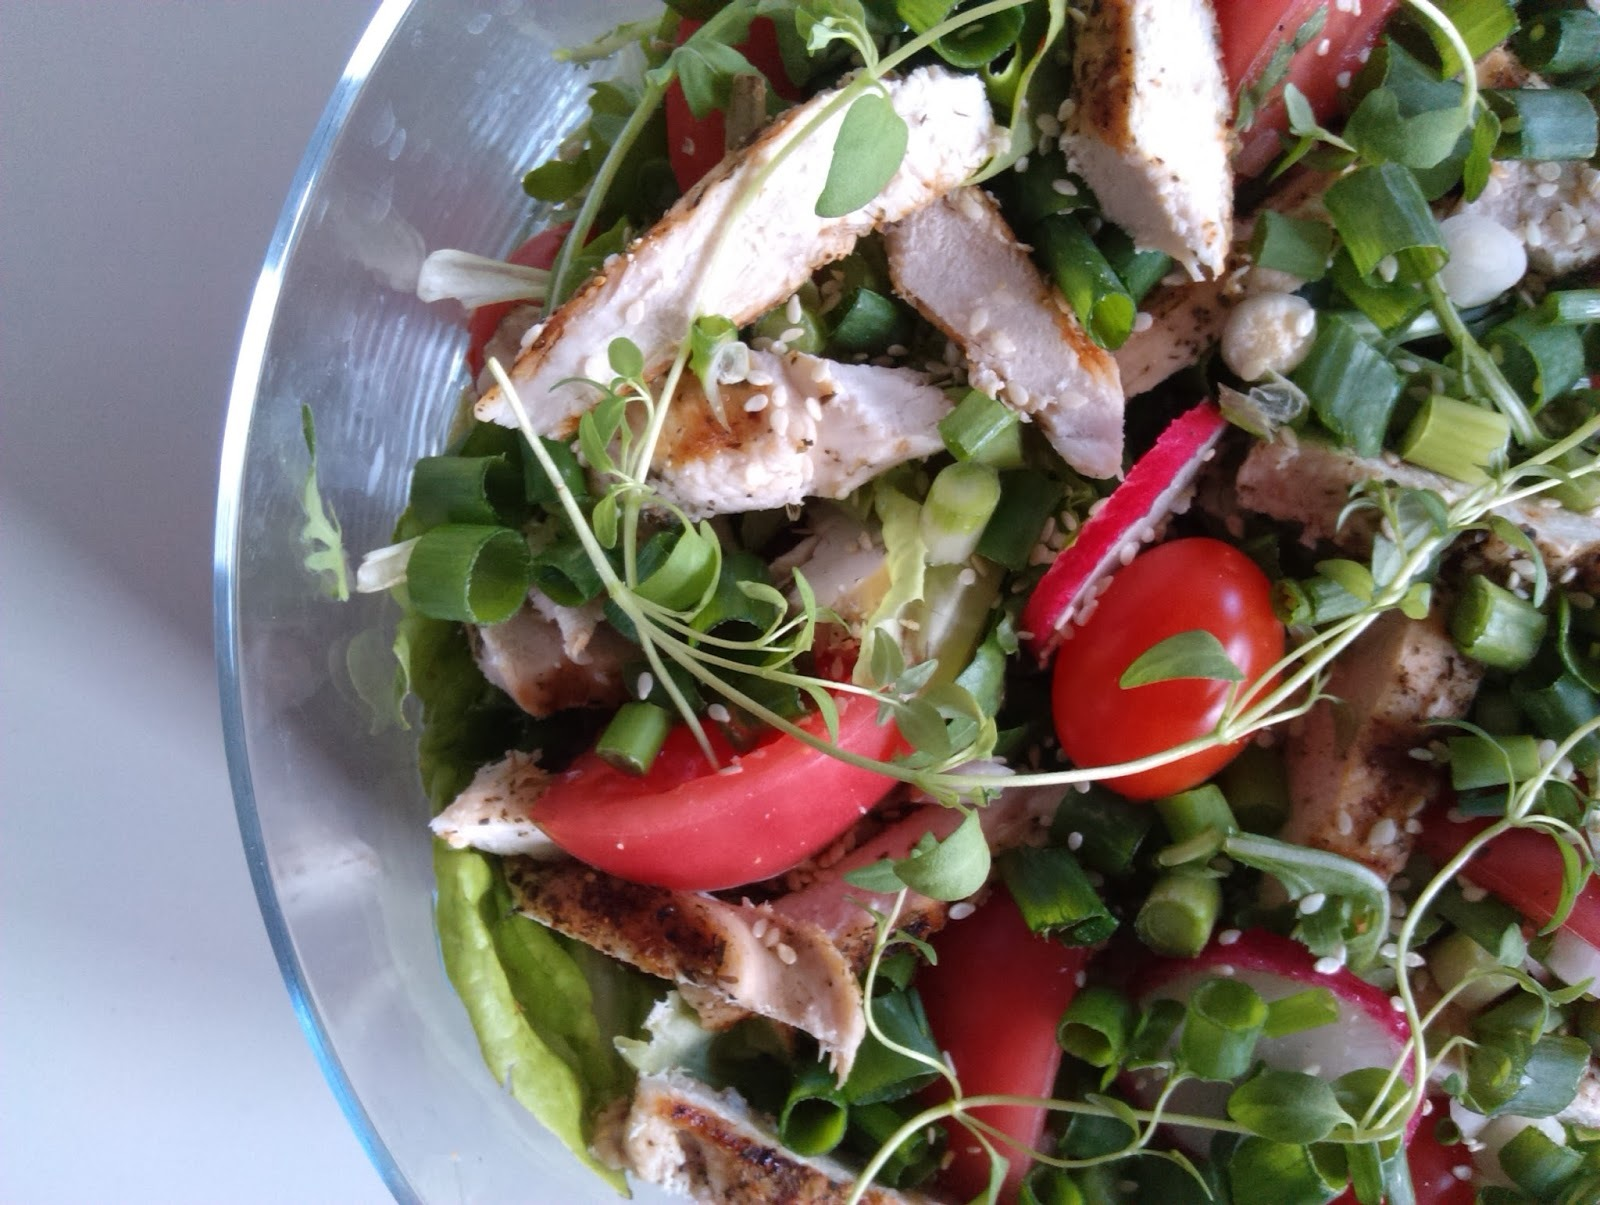 MIX SAŁAT Z GRILLOWANYM KURCZAKIEM / MIX SALAD WITH GRILLED CHICKEN